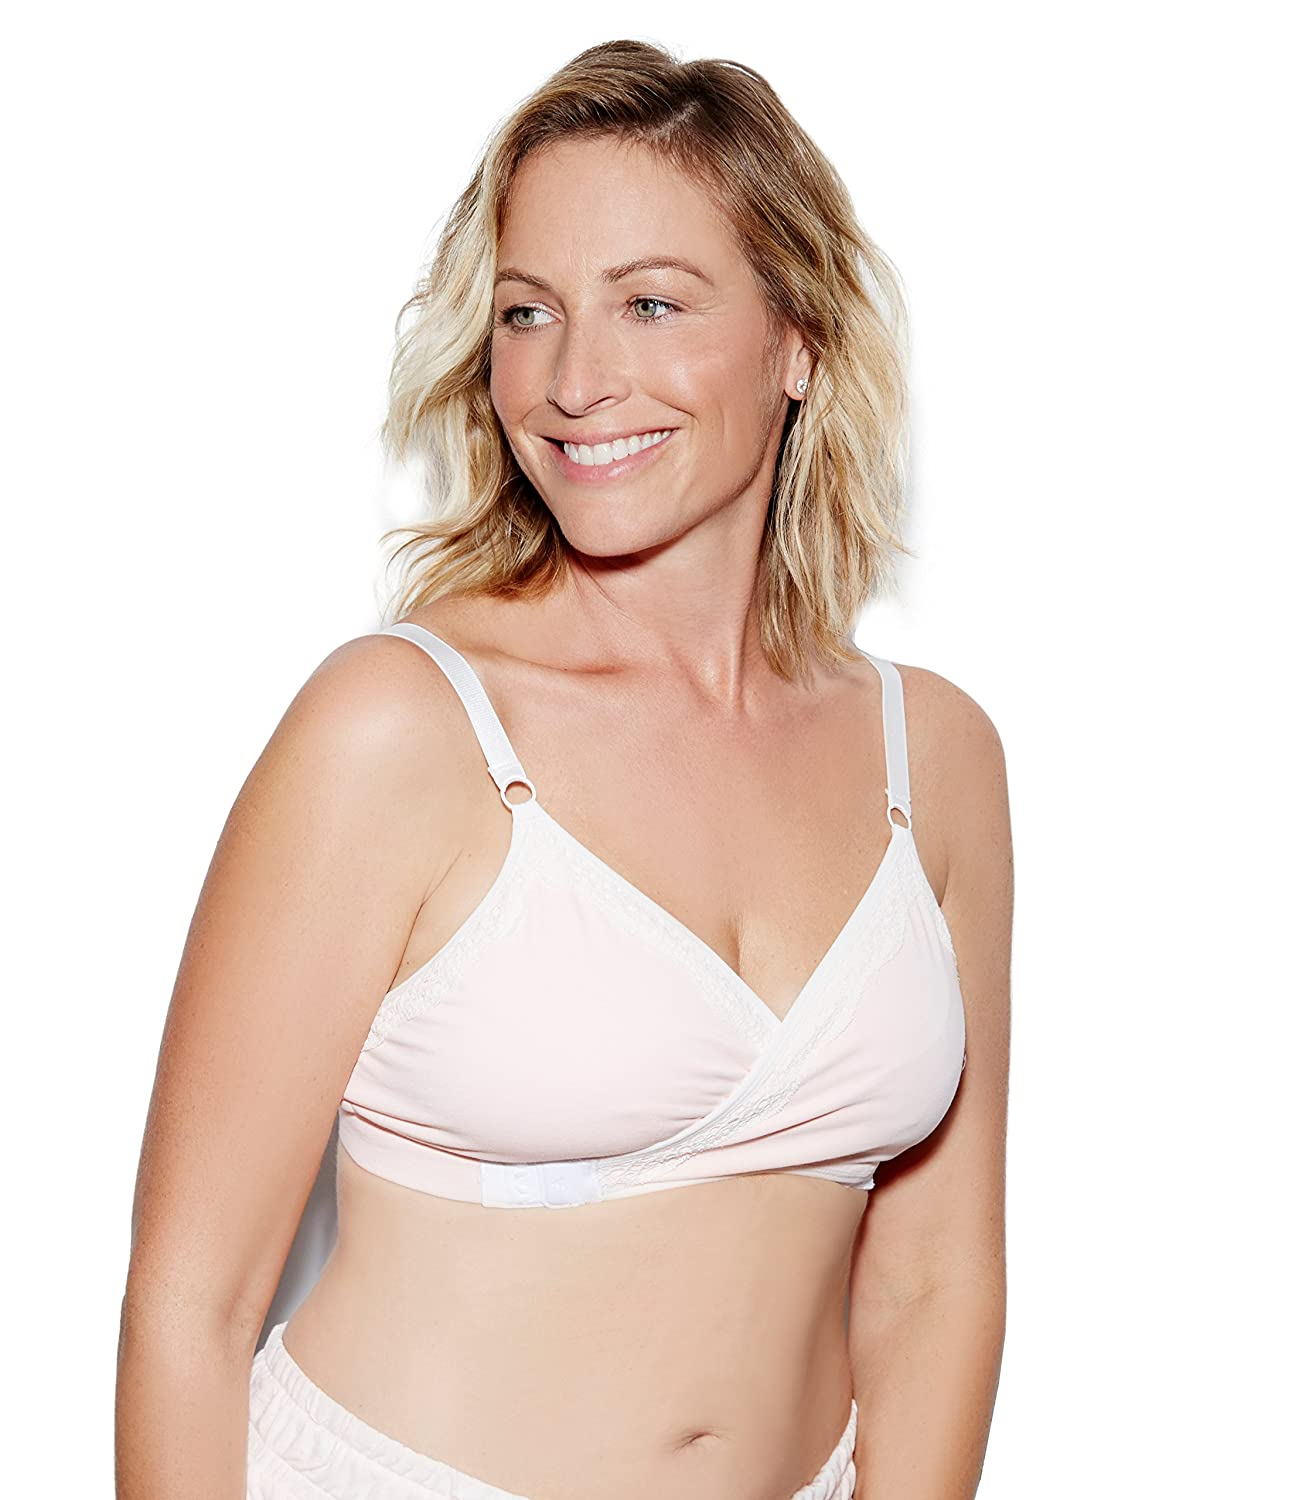 Blush The Dairy Fairy Arden All-in-One Nursing and Hands-Free Pumping Bra X-Large